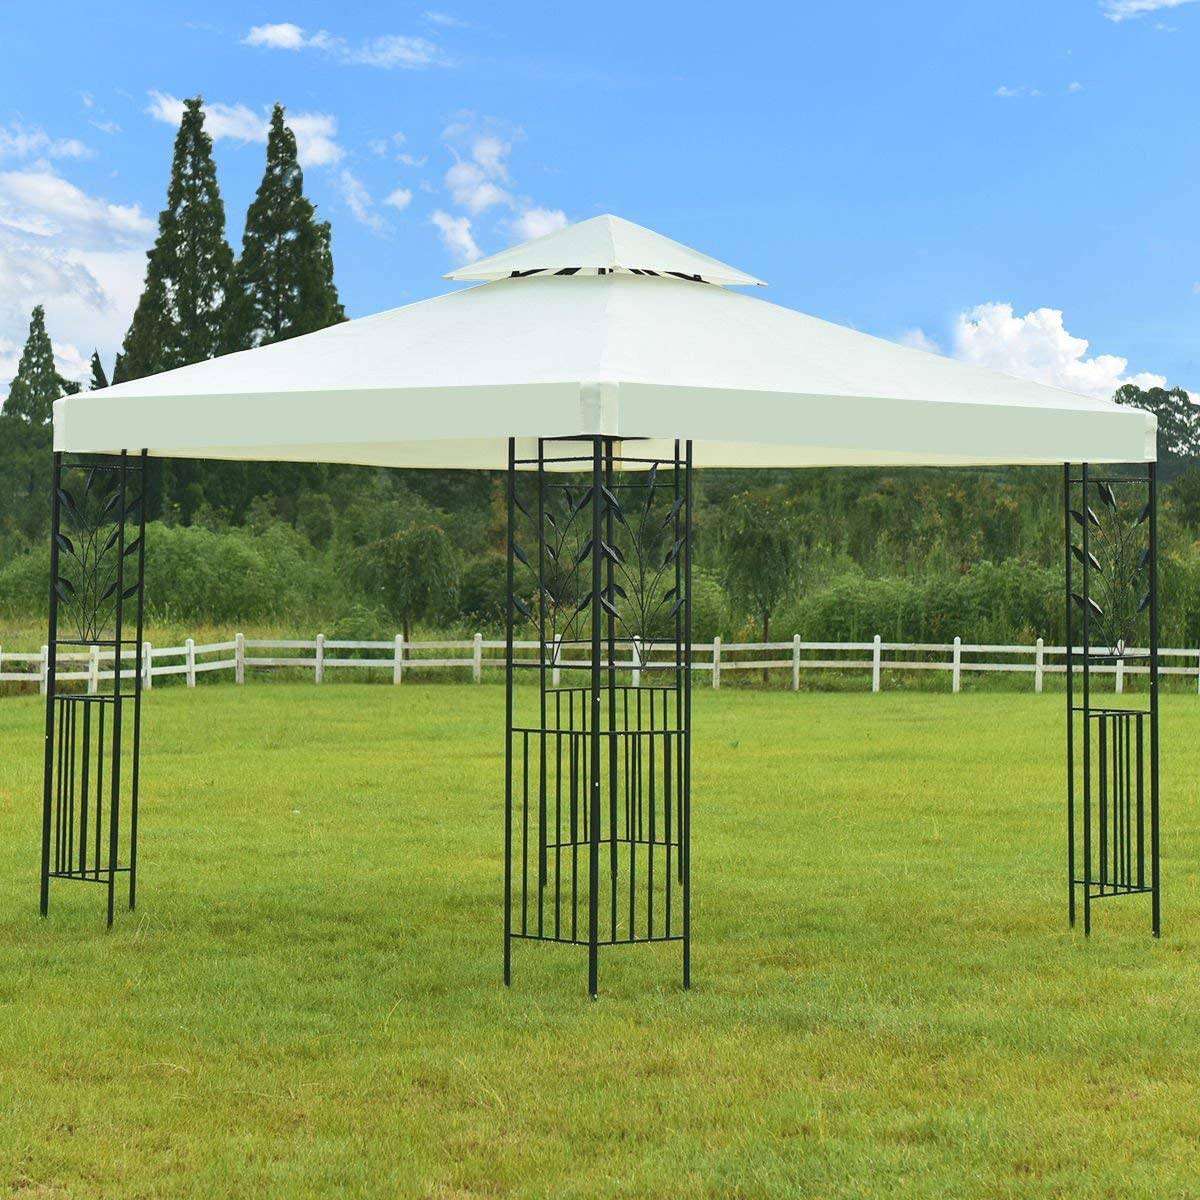 Tangkula 2 Tier 10x10 Patio Gazebo Canopy Tent Steel Frame Shelter Awning W//Side Walls